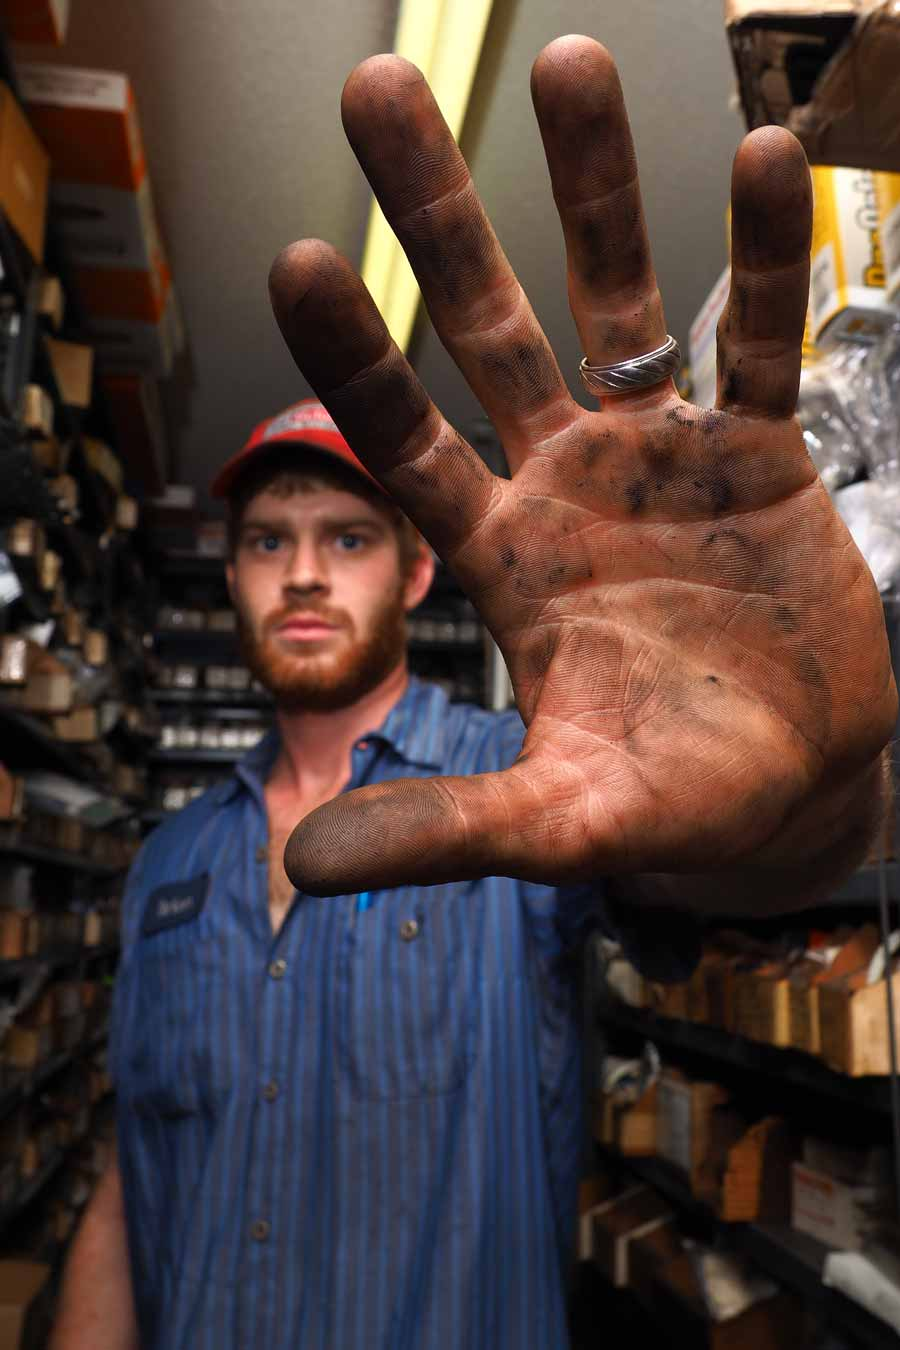 June 2014: We found plenty of grease and grime when we researched dirty jobs.